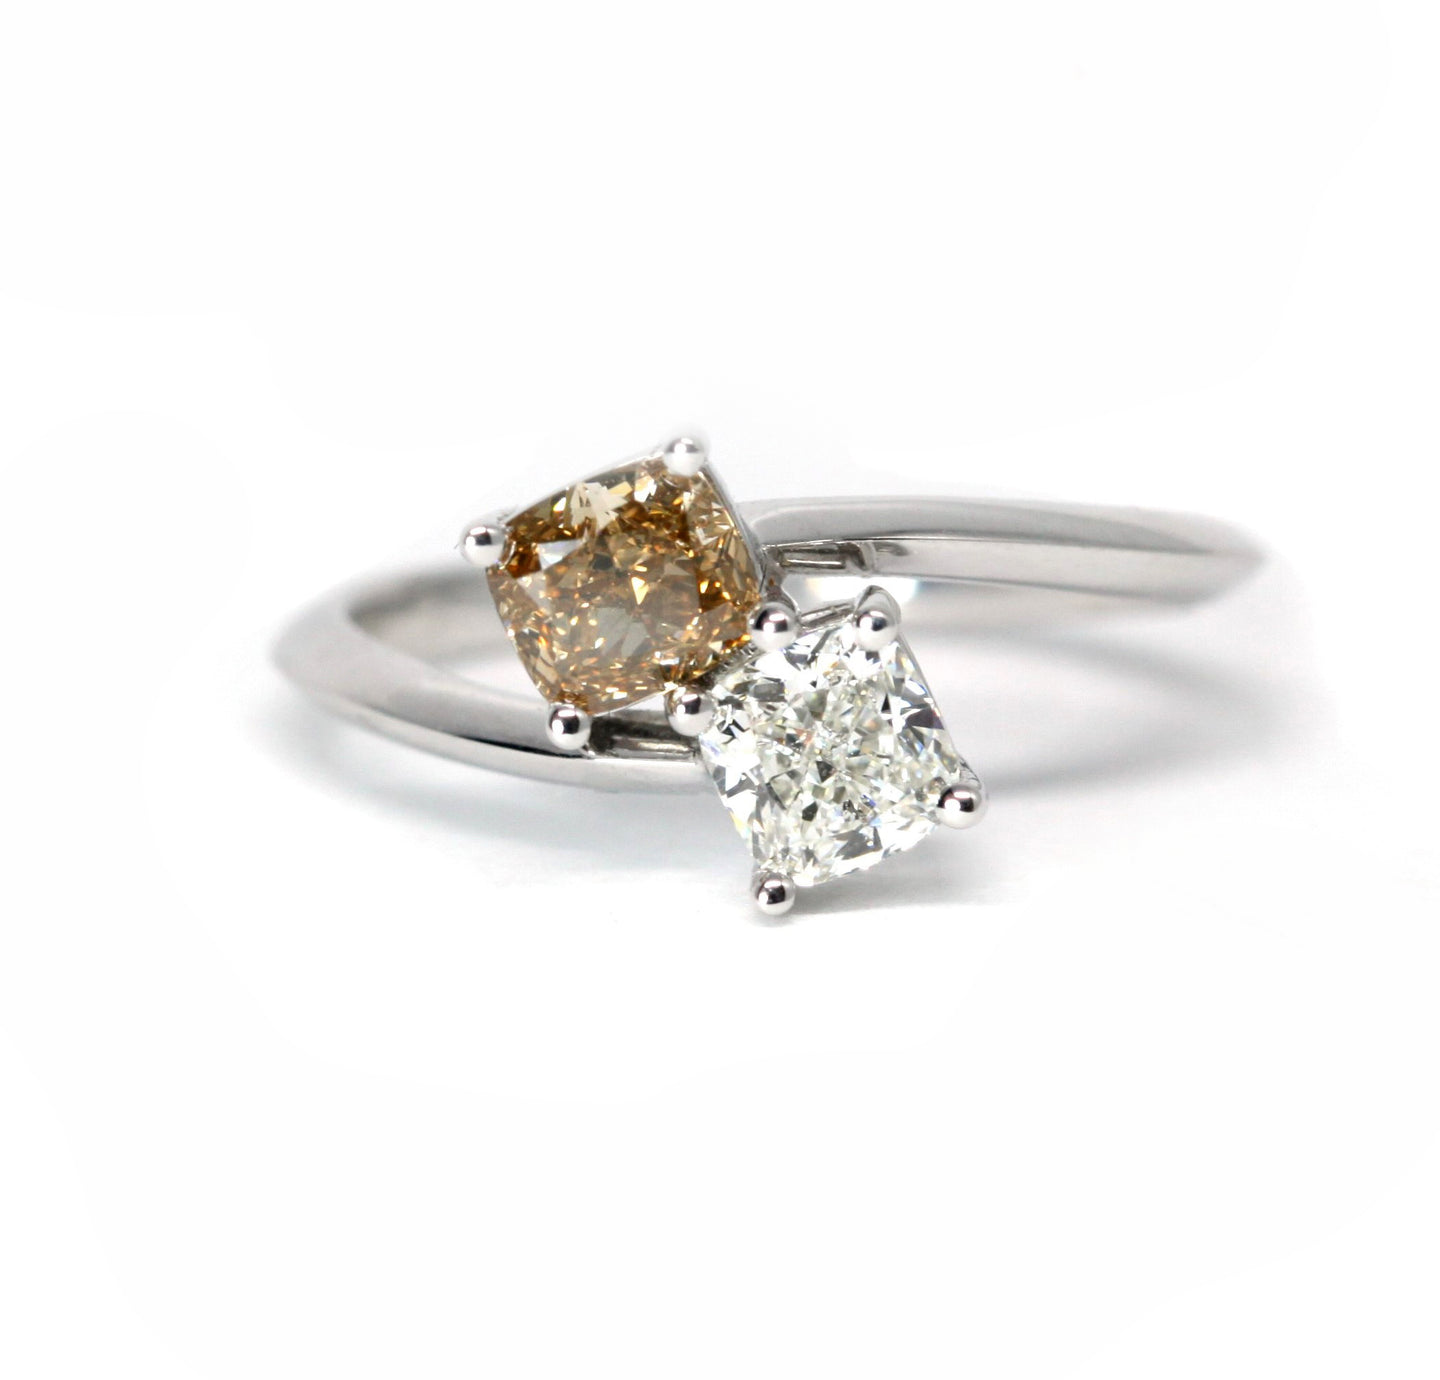 Diamond, bridal & Custom jewelry